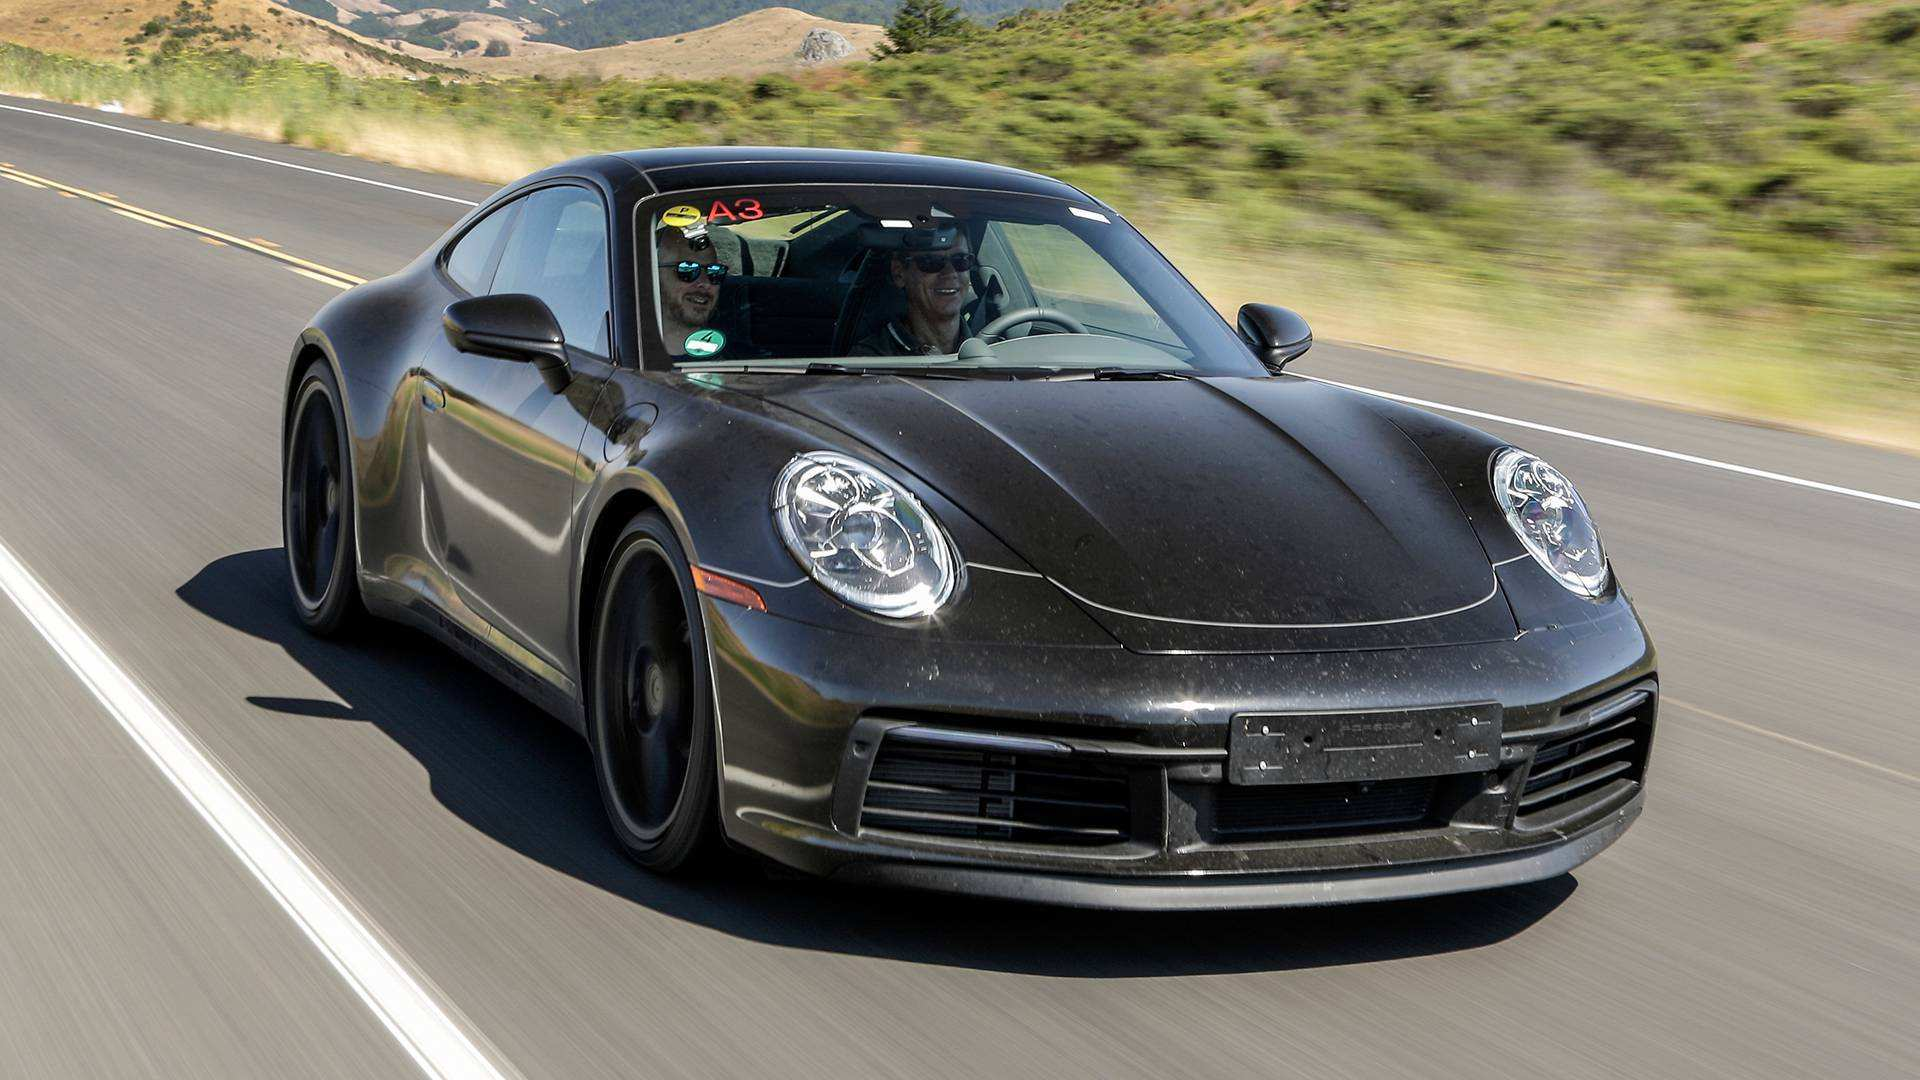 73 The Best 2020 Porsche 911 Performance And New Engine